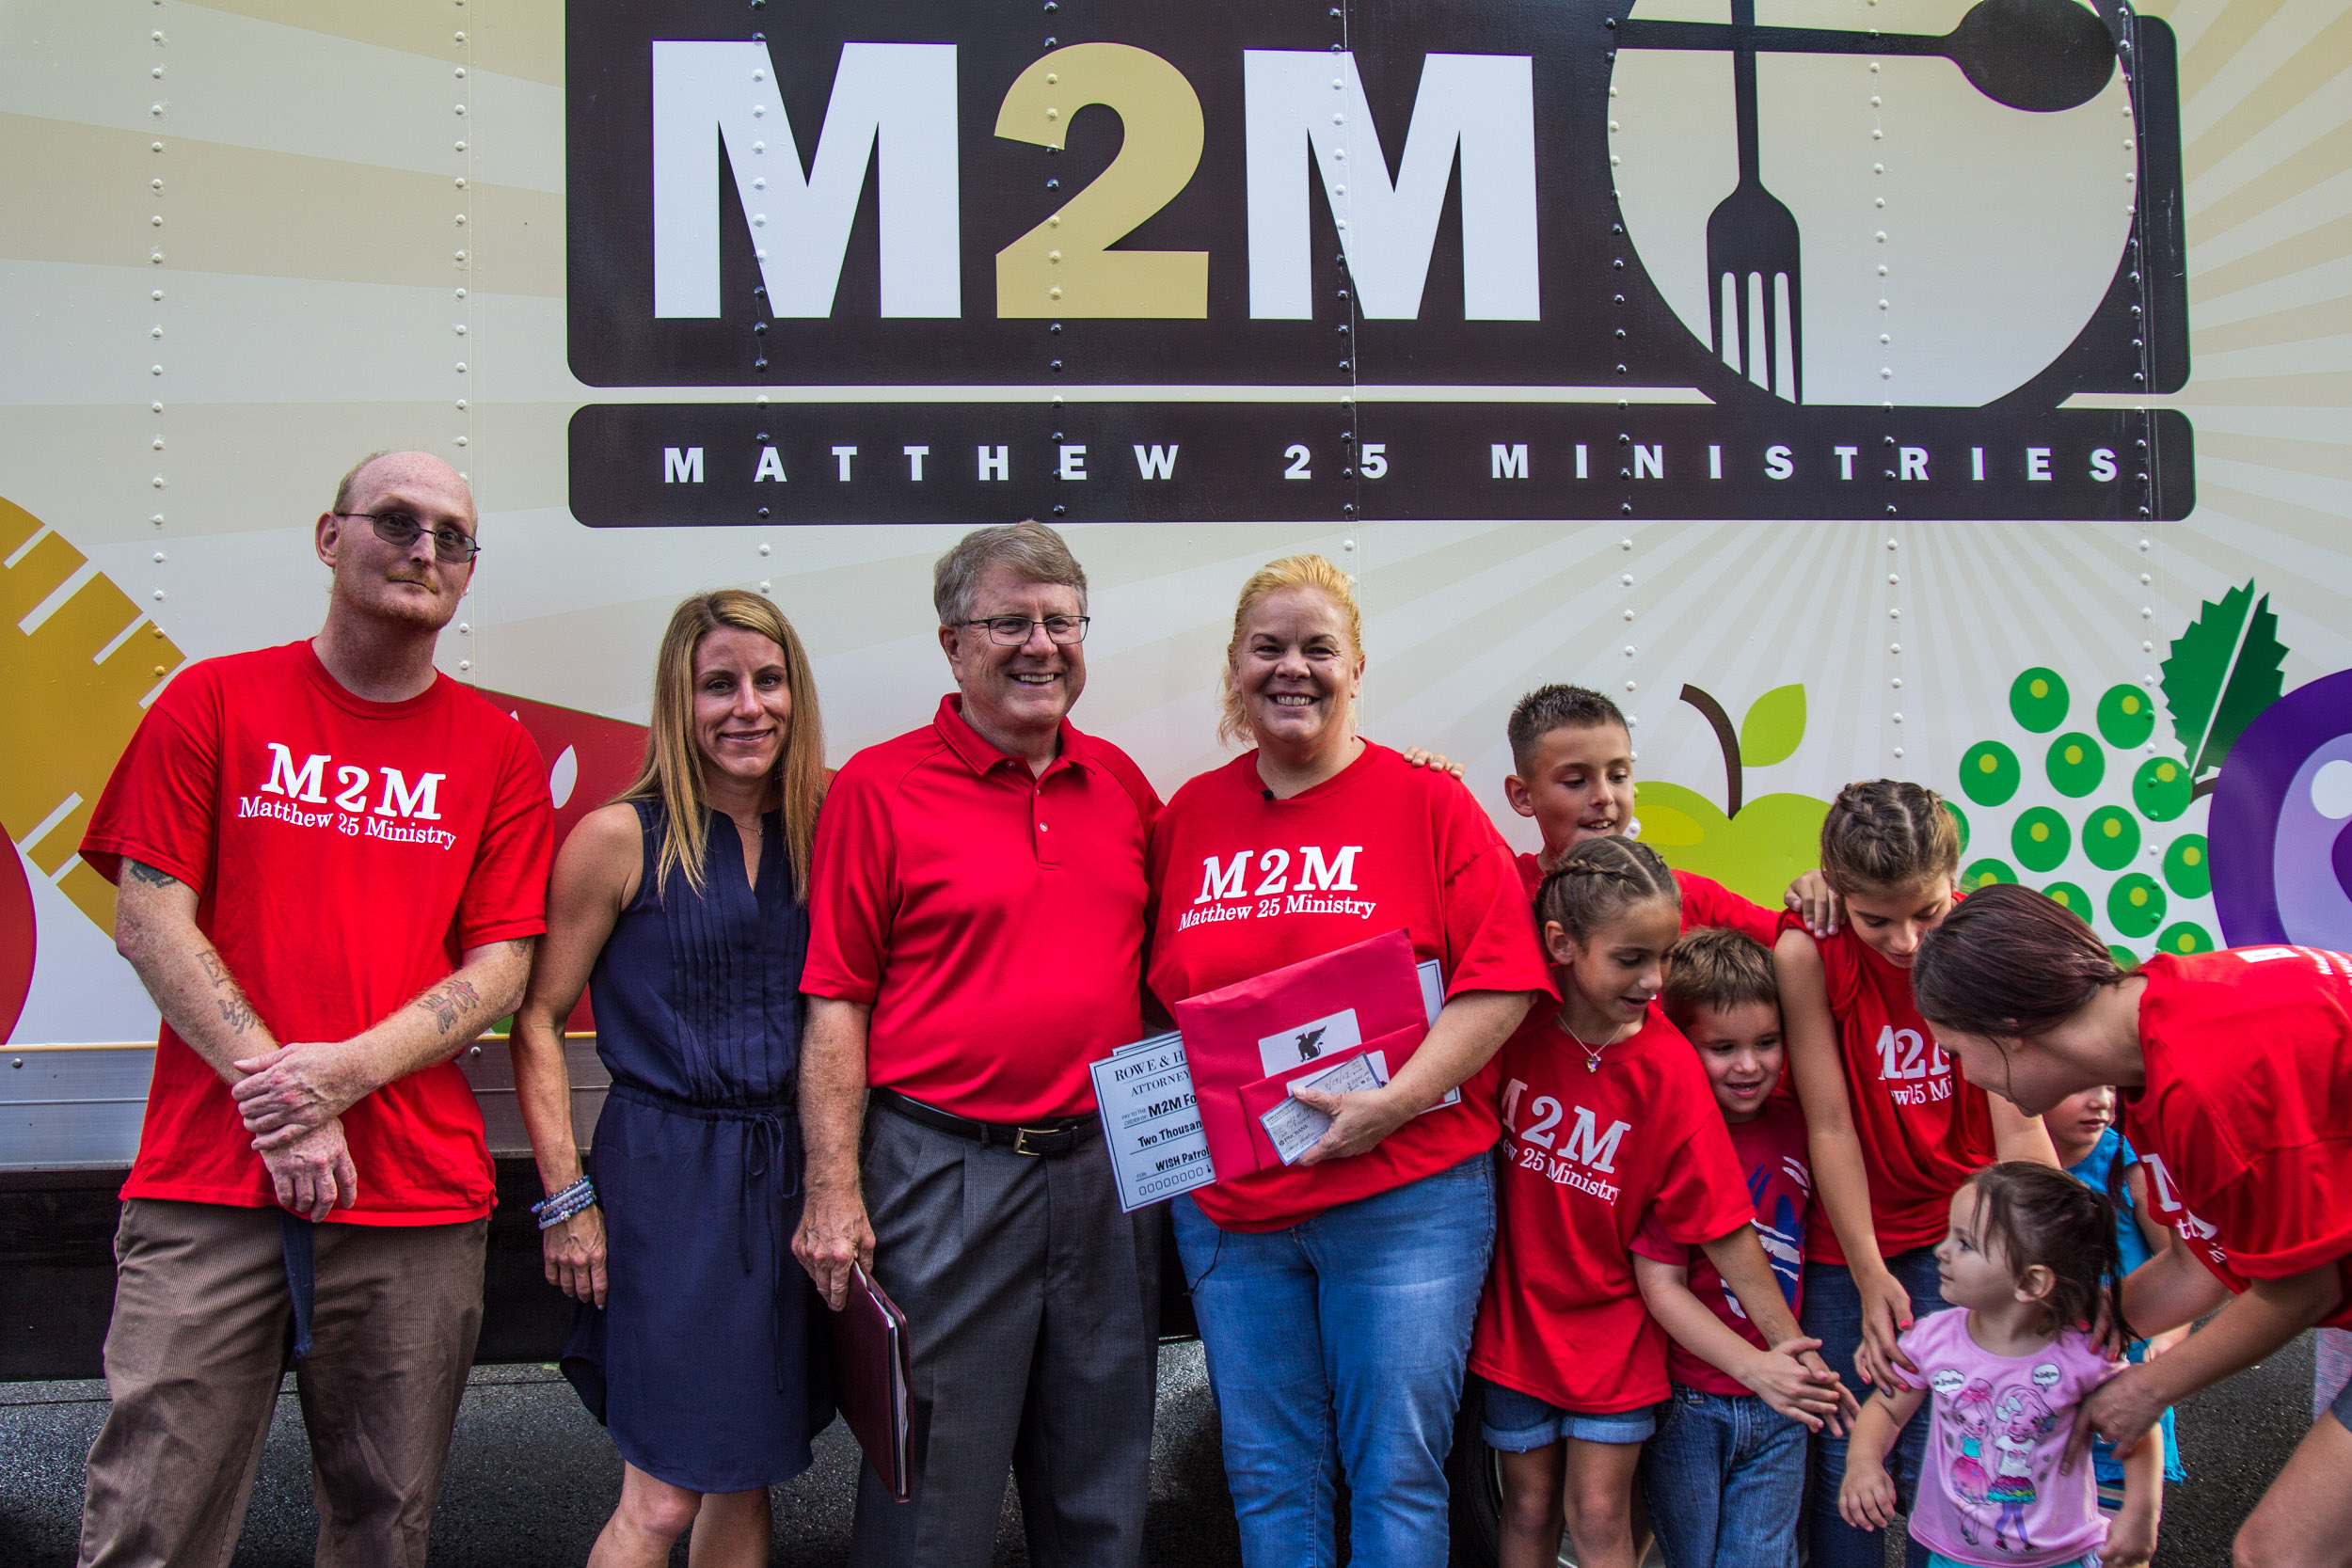 Koorsen Family Foundation Joins WISH Patrol in Supporting M2M Ministry